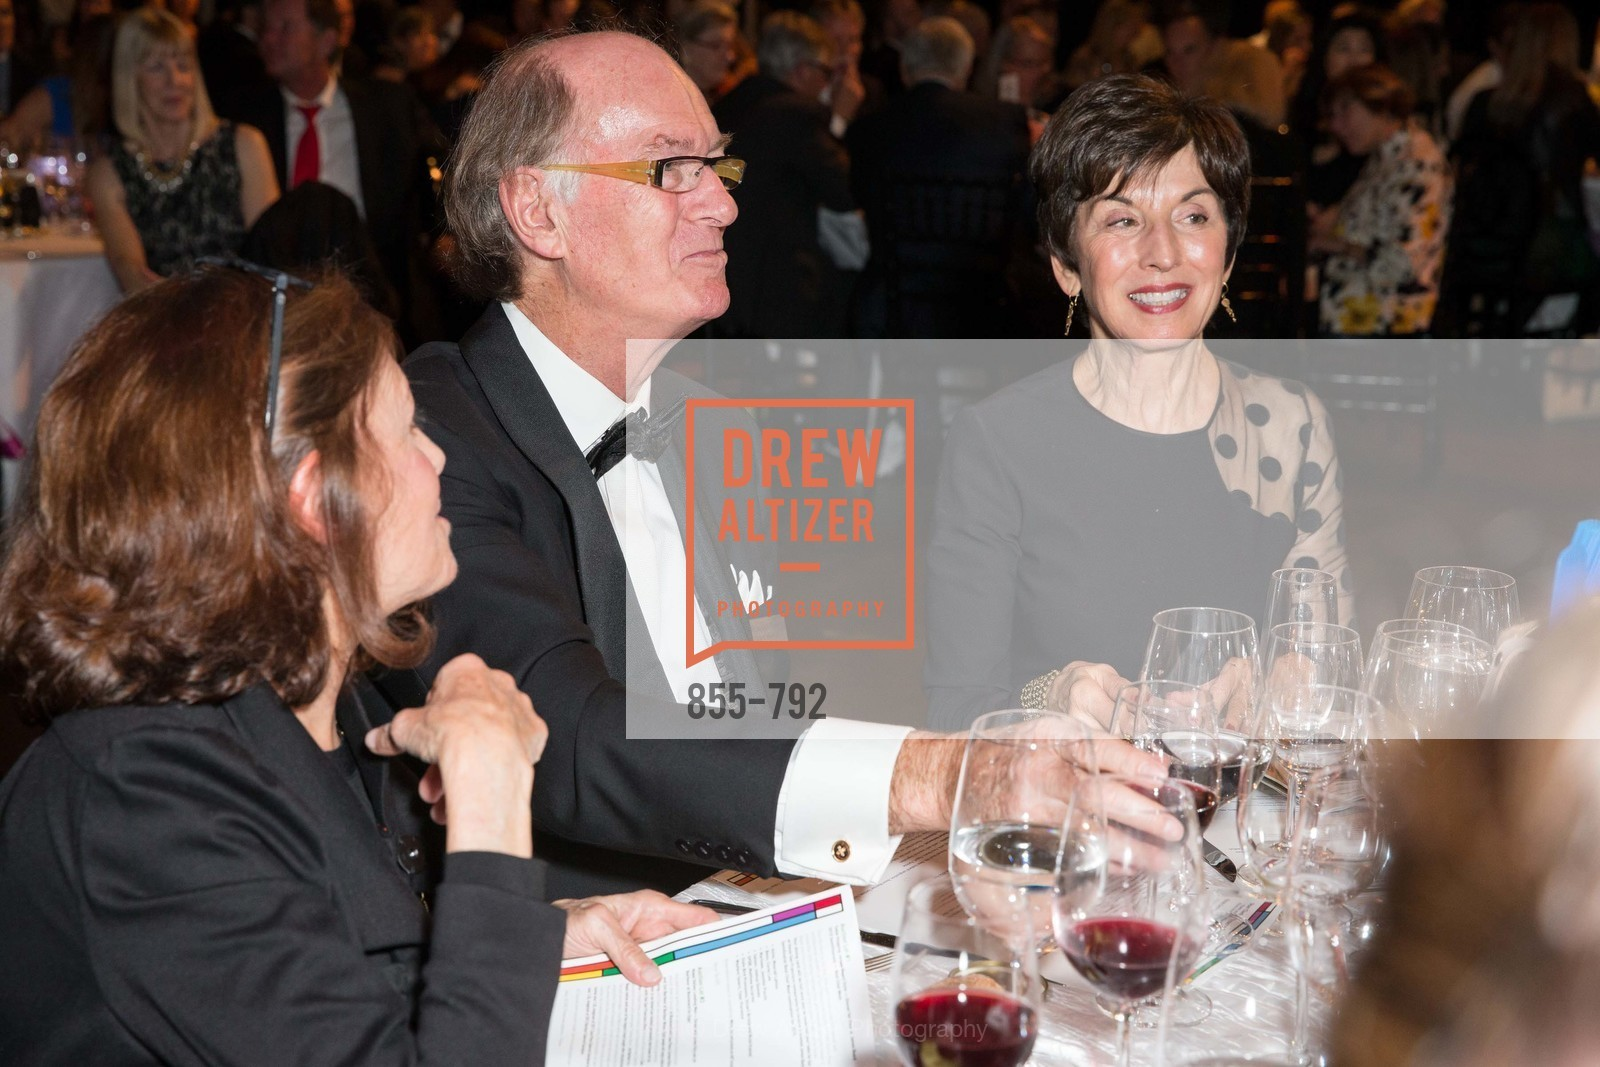 Russ Flynn, Lee Flynn, MEALS ON WHEELS OF SAN FRANCISCO'S 28th Annual Star Chefs and Vintners Gala, US, April 19th, 2015,Drew Altizer, Drew Altizer Photography, full-service agency, private events, San Francisco photographer, photographer california